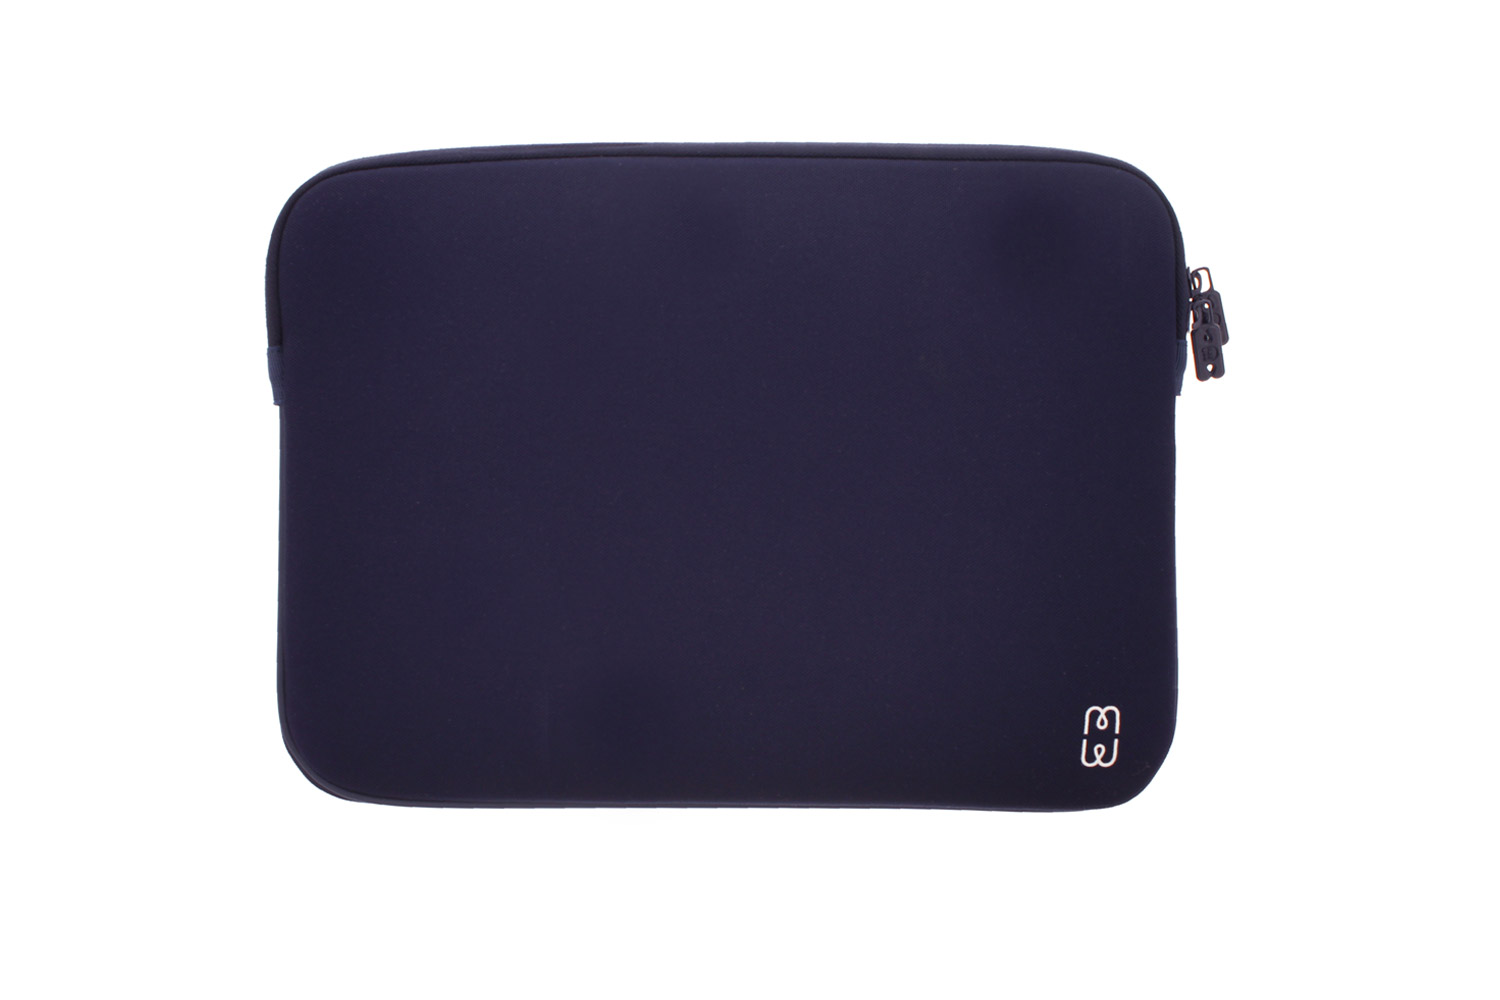 Housse pour macbook pro 15 bleu blanc mw for Housse macbook pro 15